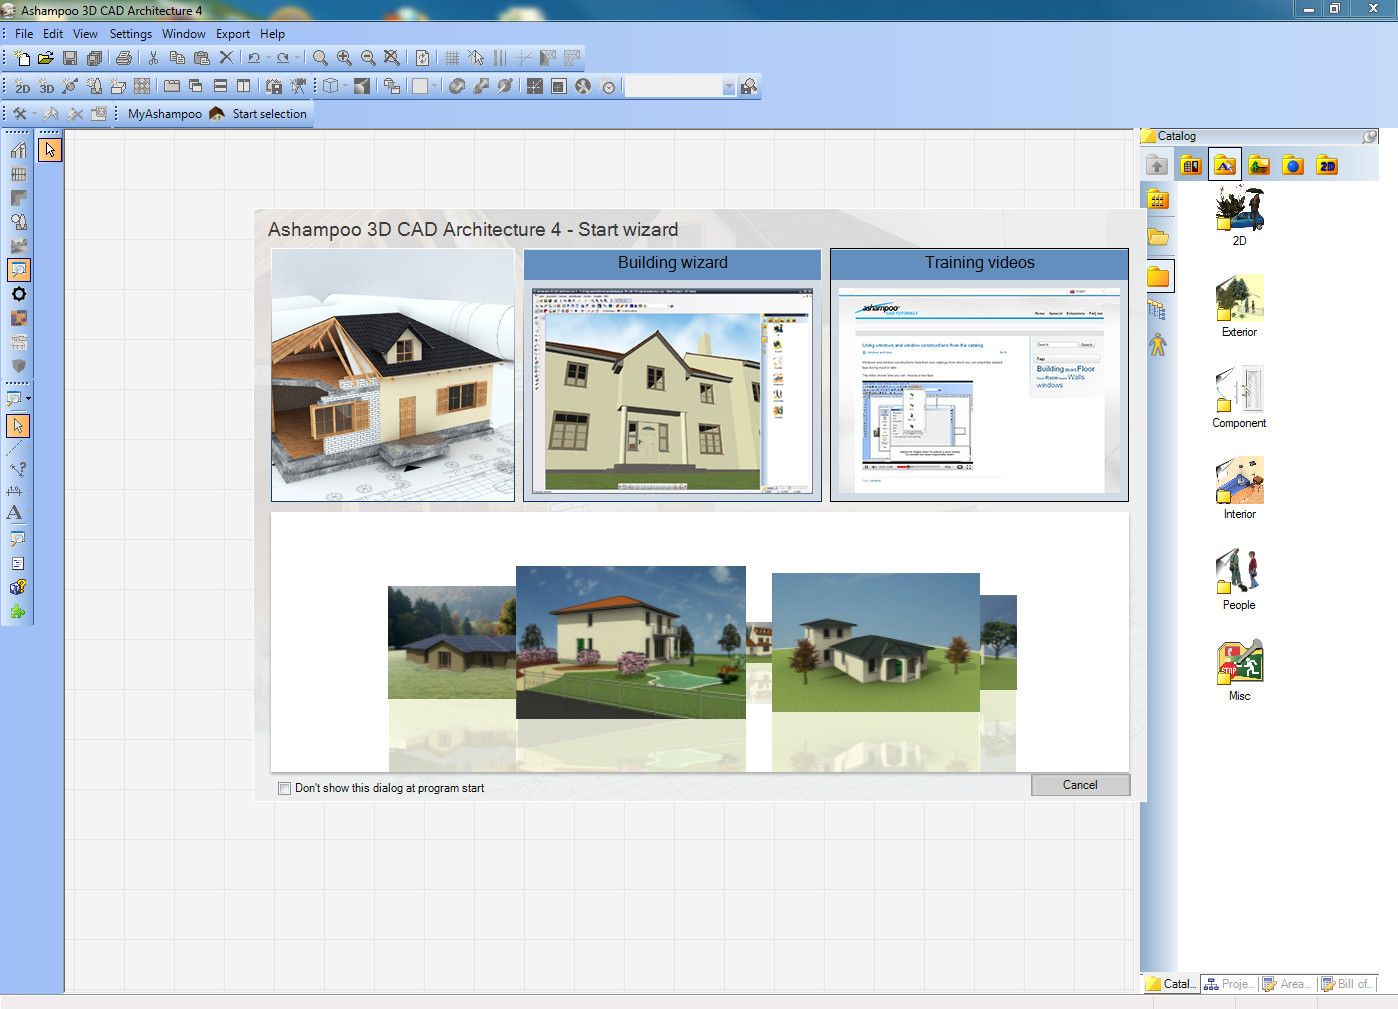 New ashampoo 3d cad architecture 4 best software 4 Free 3d cad software